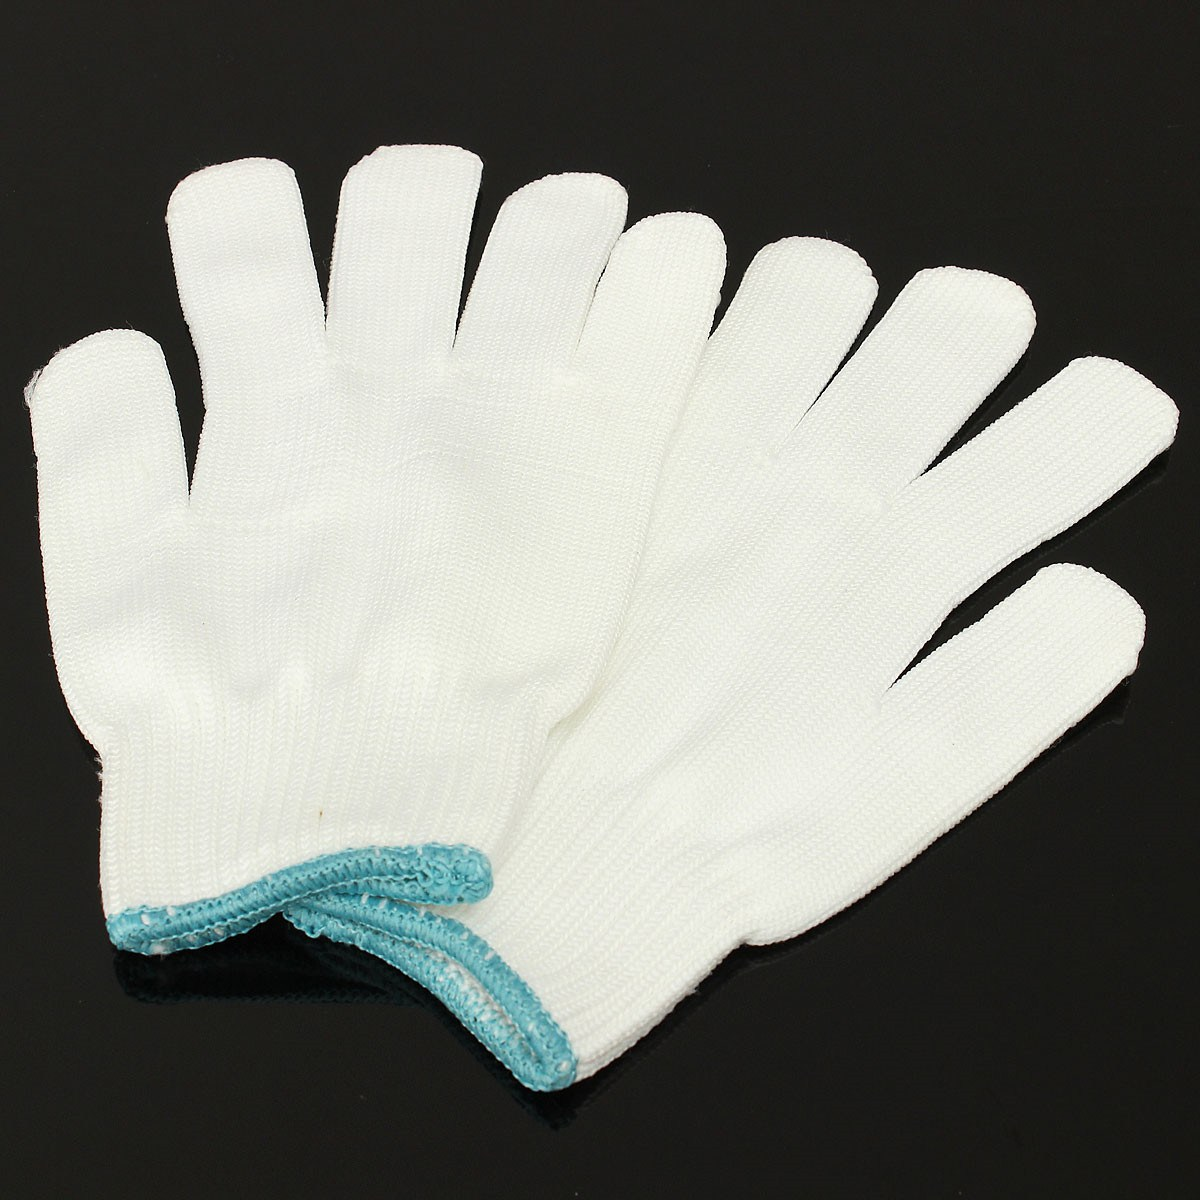 Safurance Heat Resistant Anti Protection Burn Hot Heatproof Glove BBQ Oven Kitchen Gloves Workplace Safety mr grill heat resistant oven